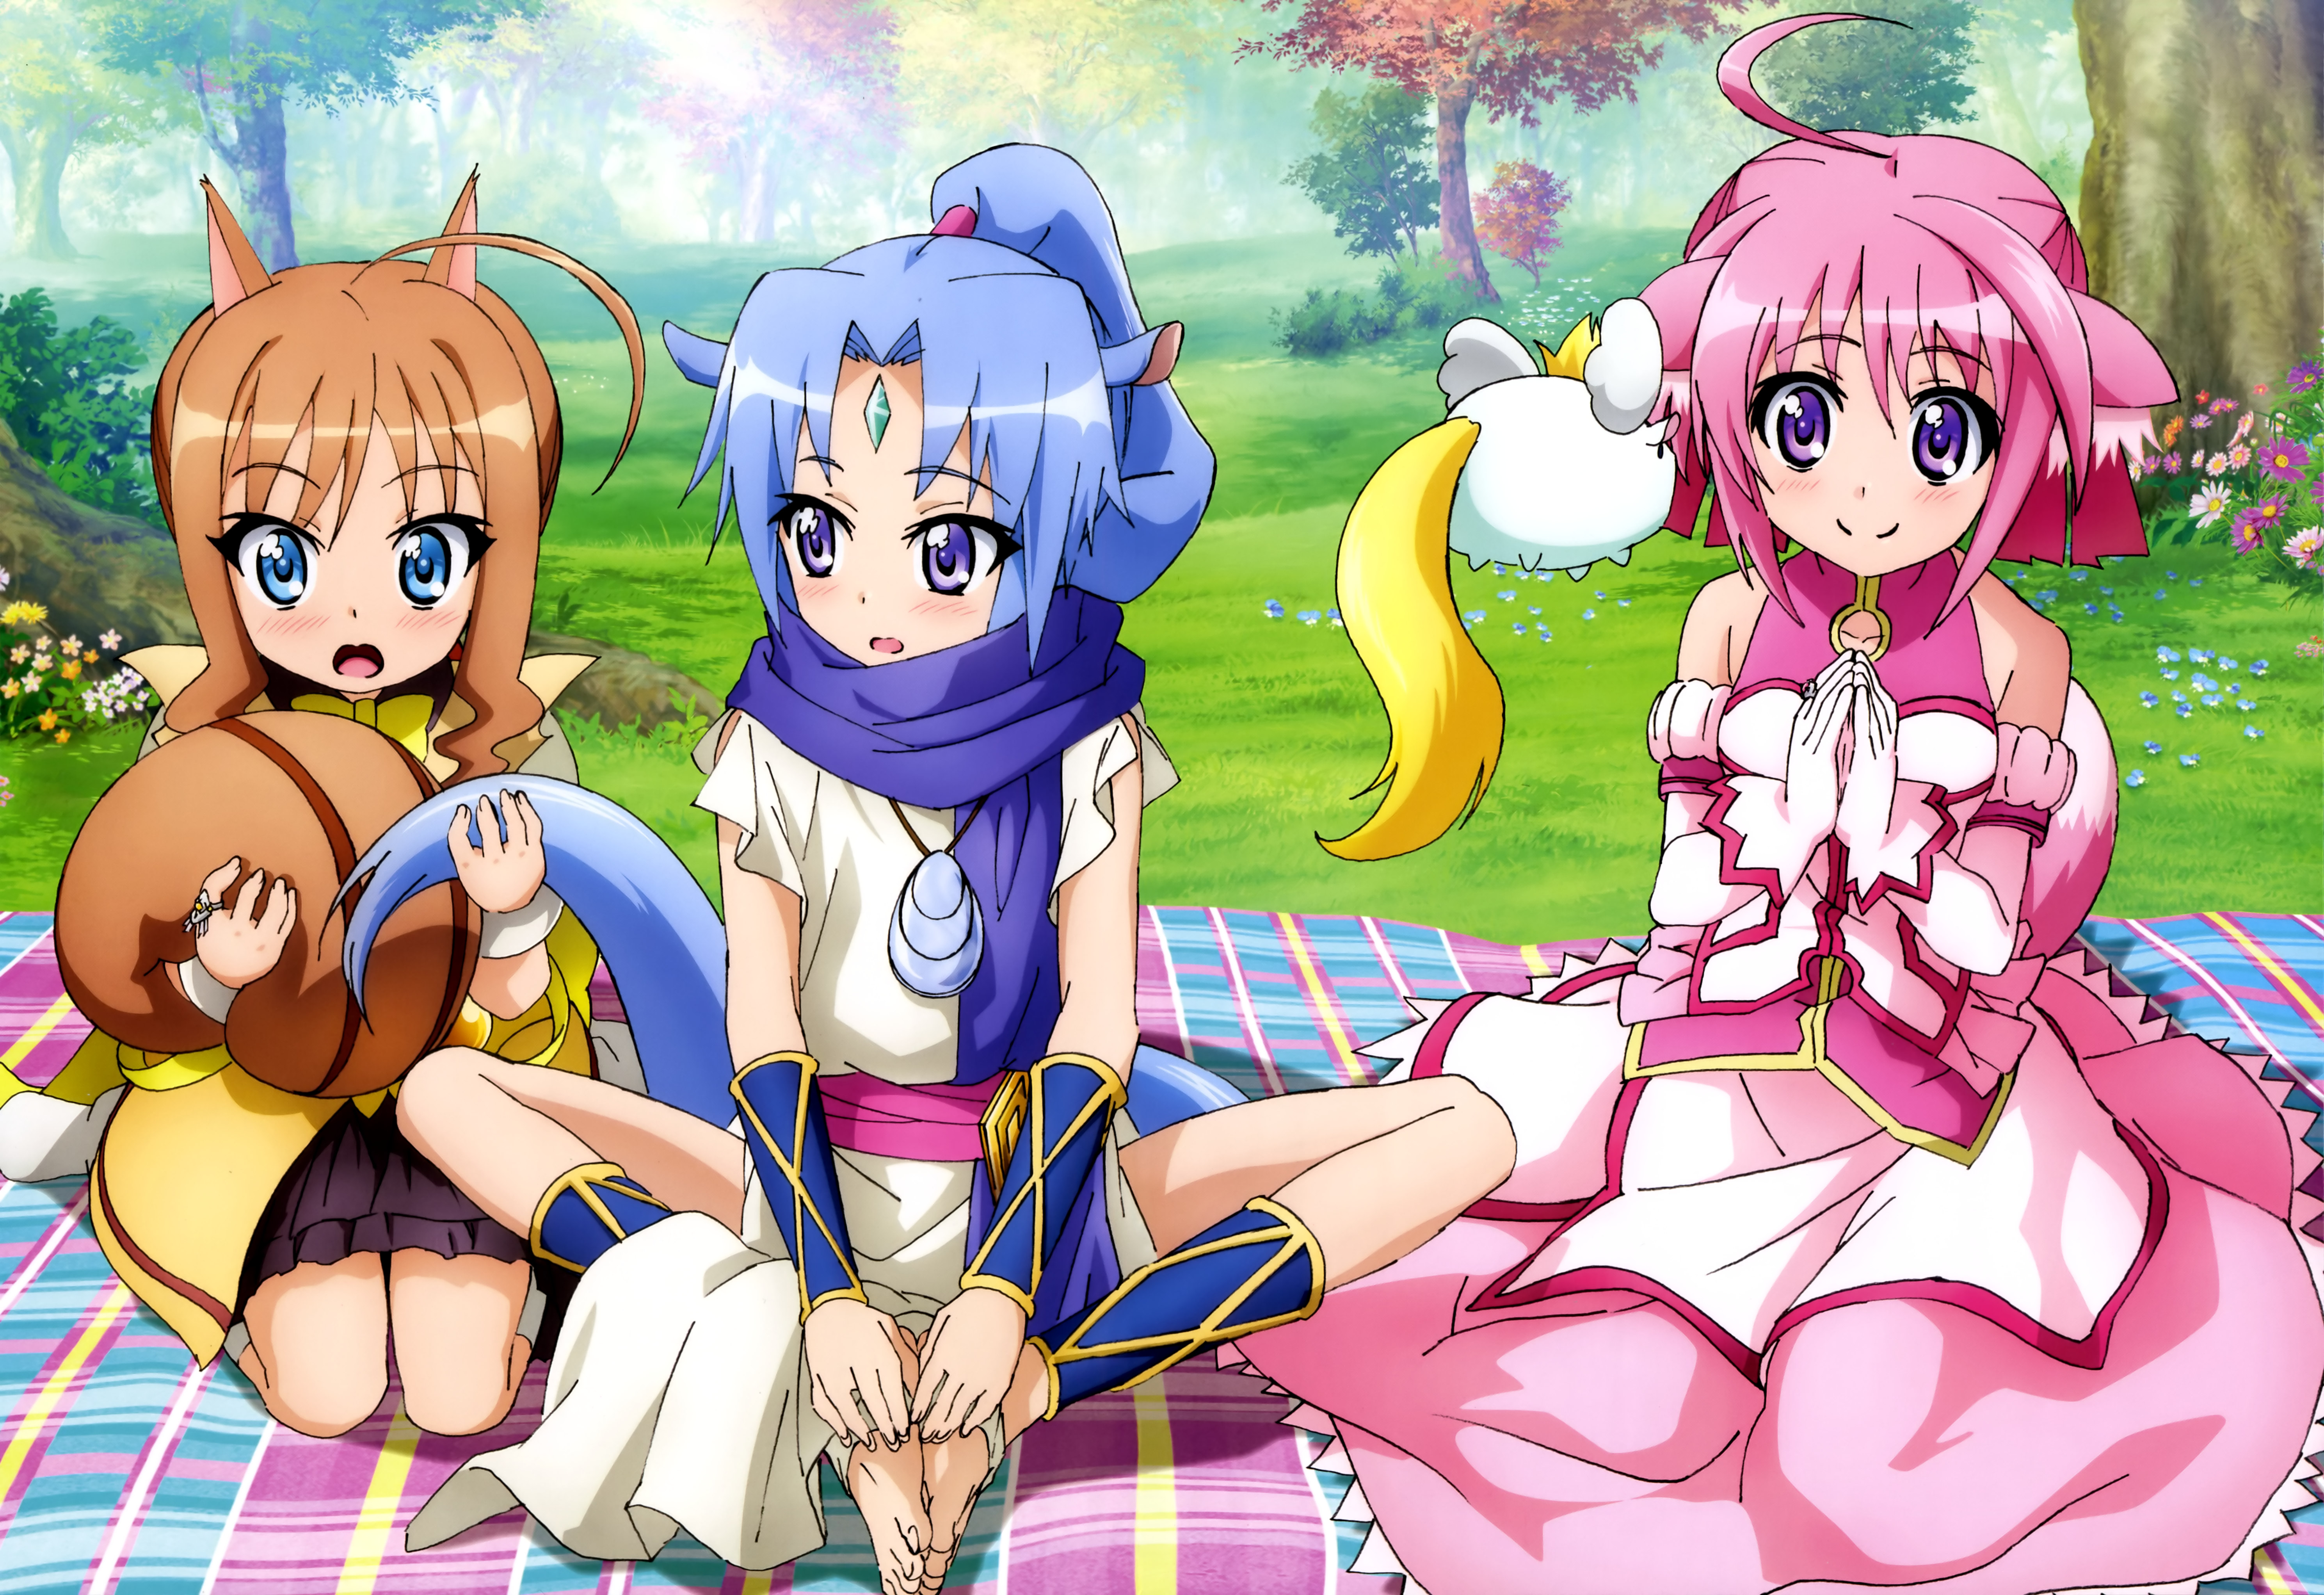 Dog Days 3 poster Haruhichan.com NyanType February 2015 article